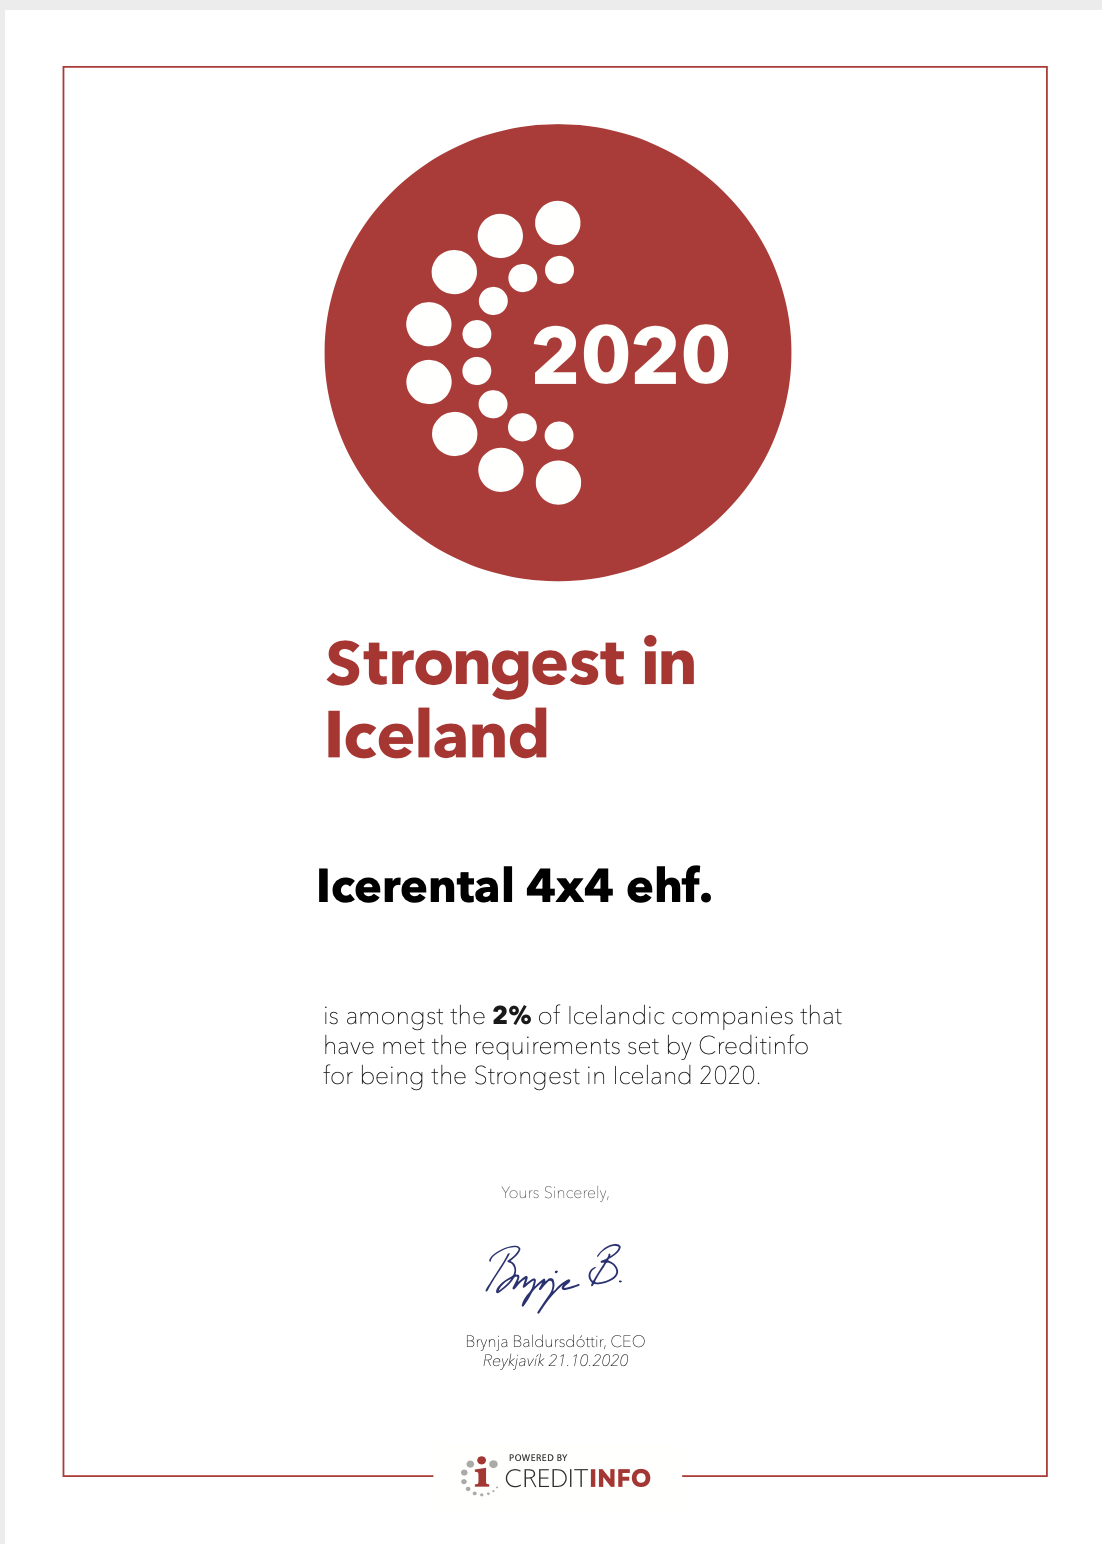 Icerental4x4 Strongest in Iceland